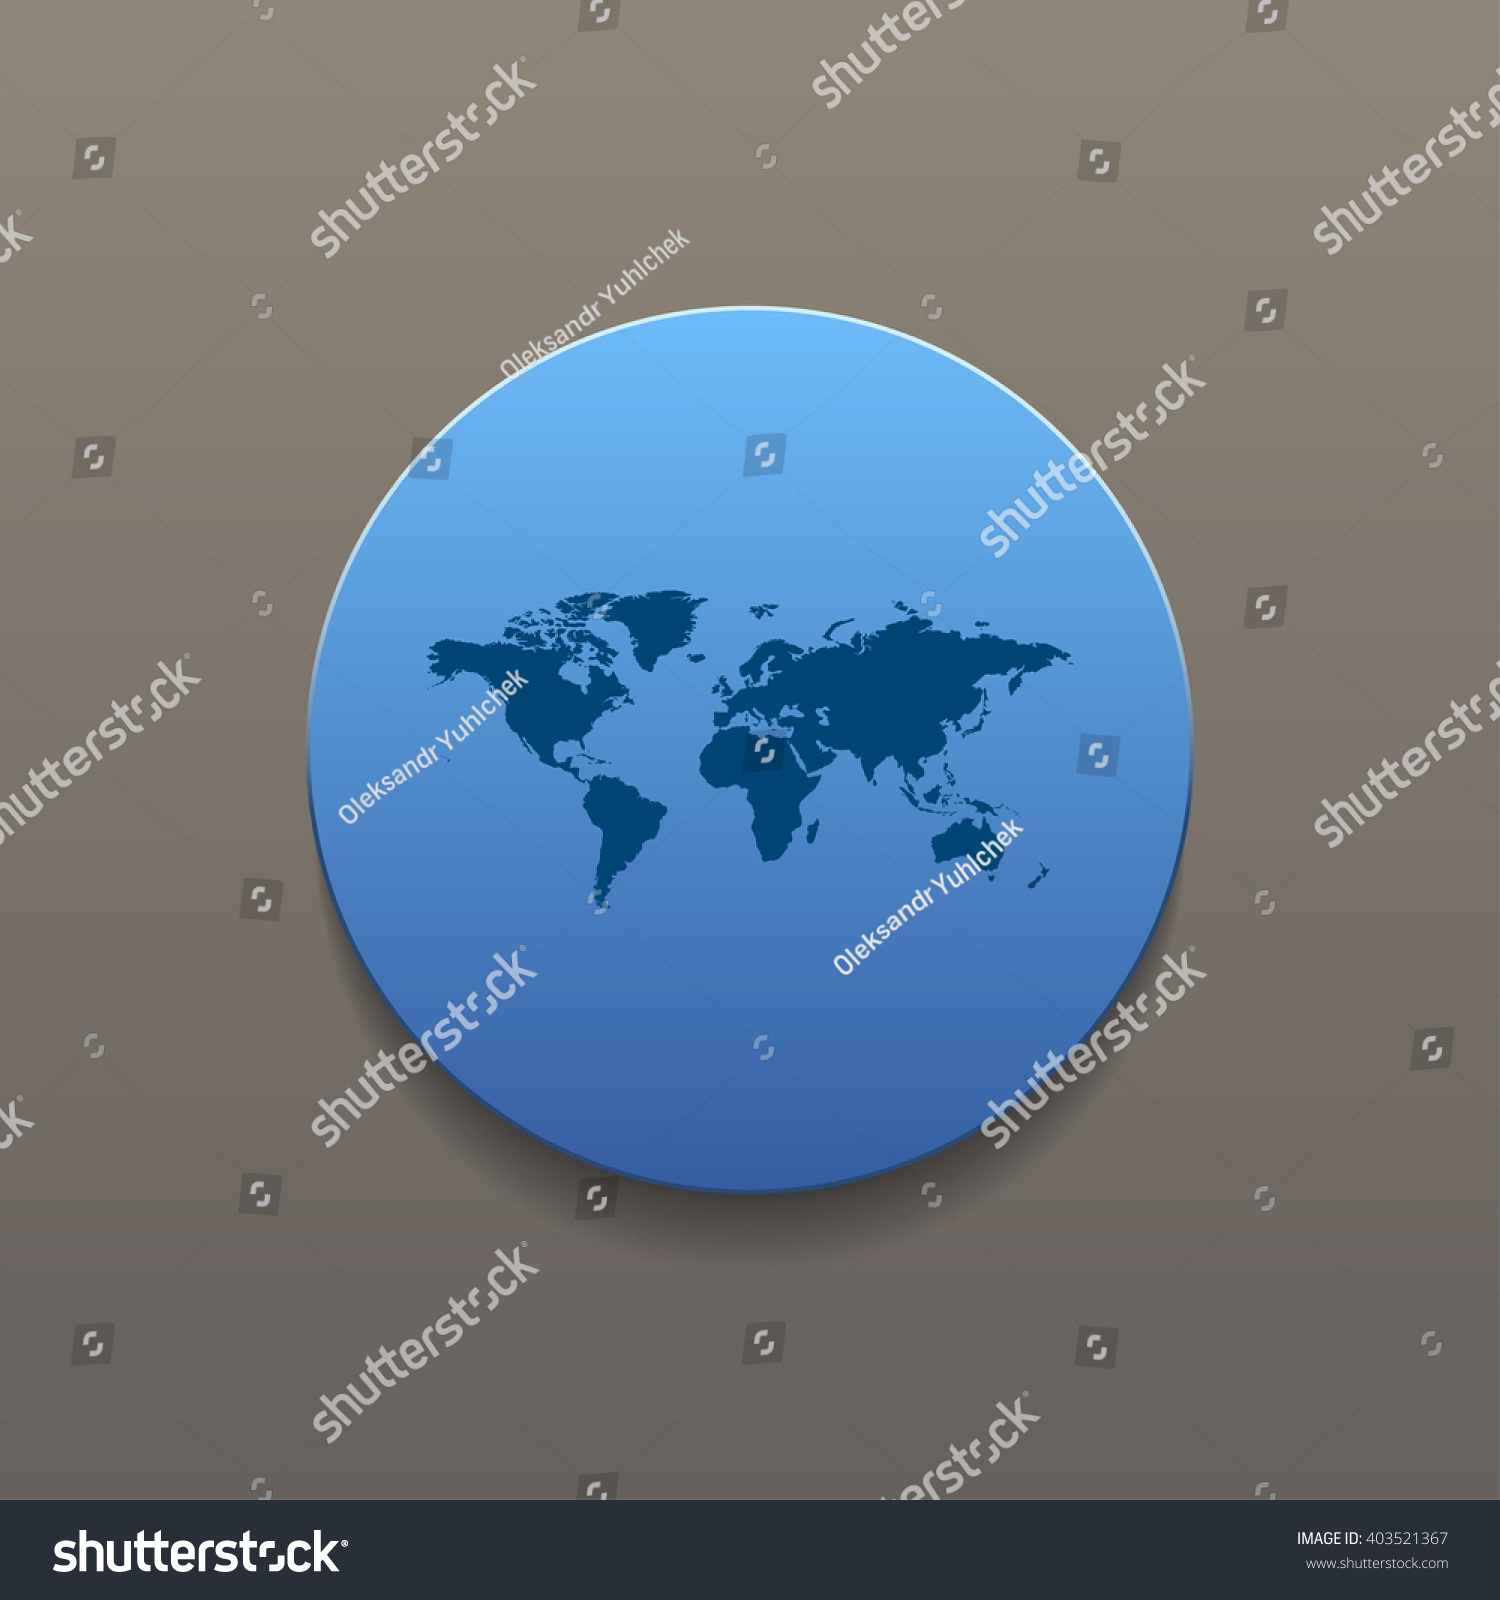 World map illustration flat design style stock vector 403521367 world map illustration flat design style eps 10 gumiabroncs Images